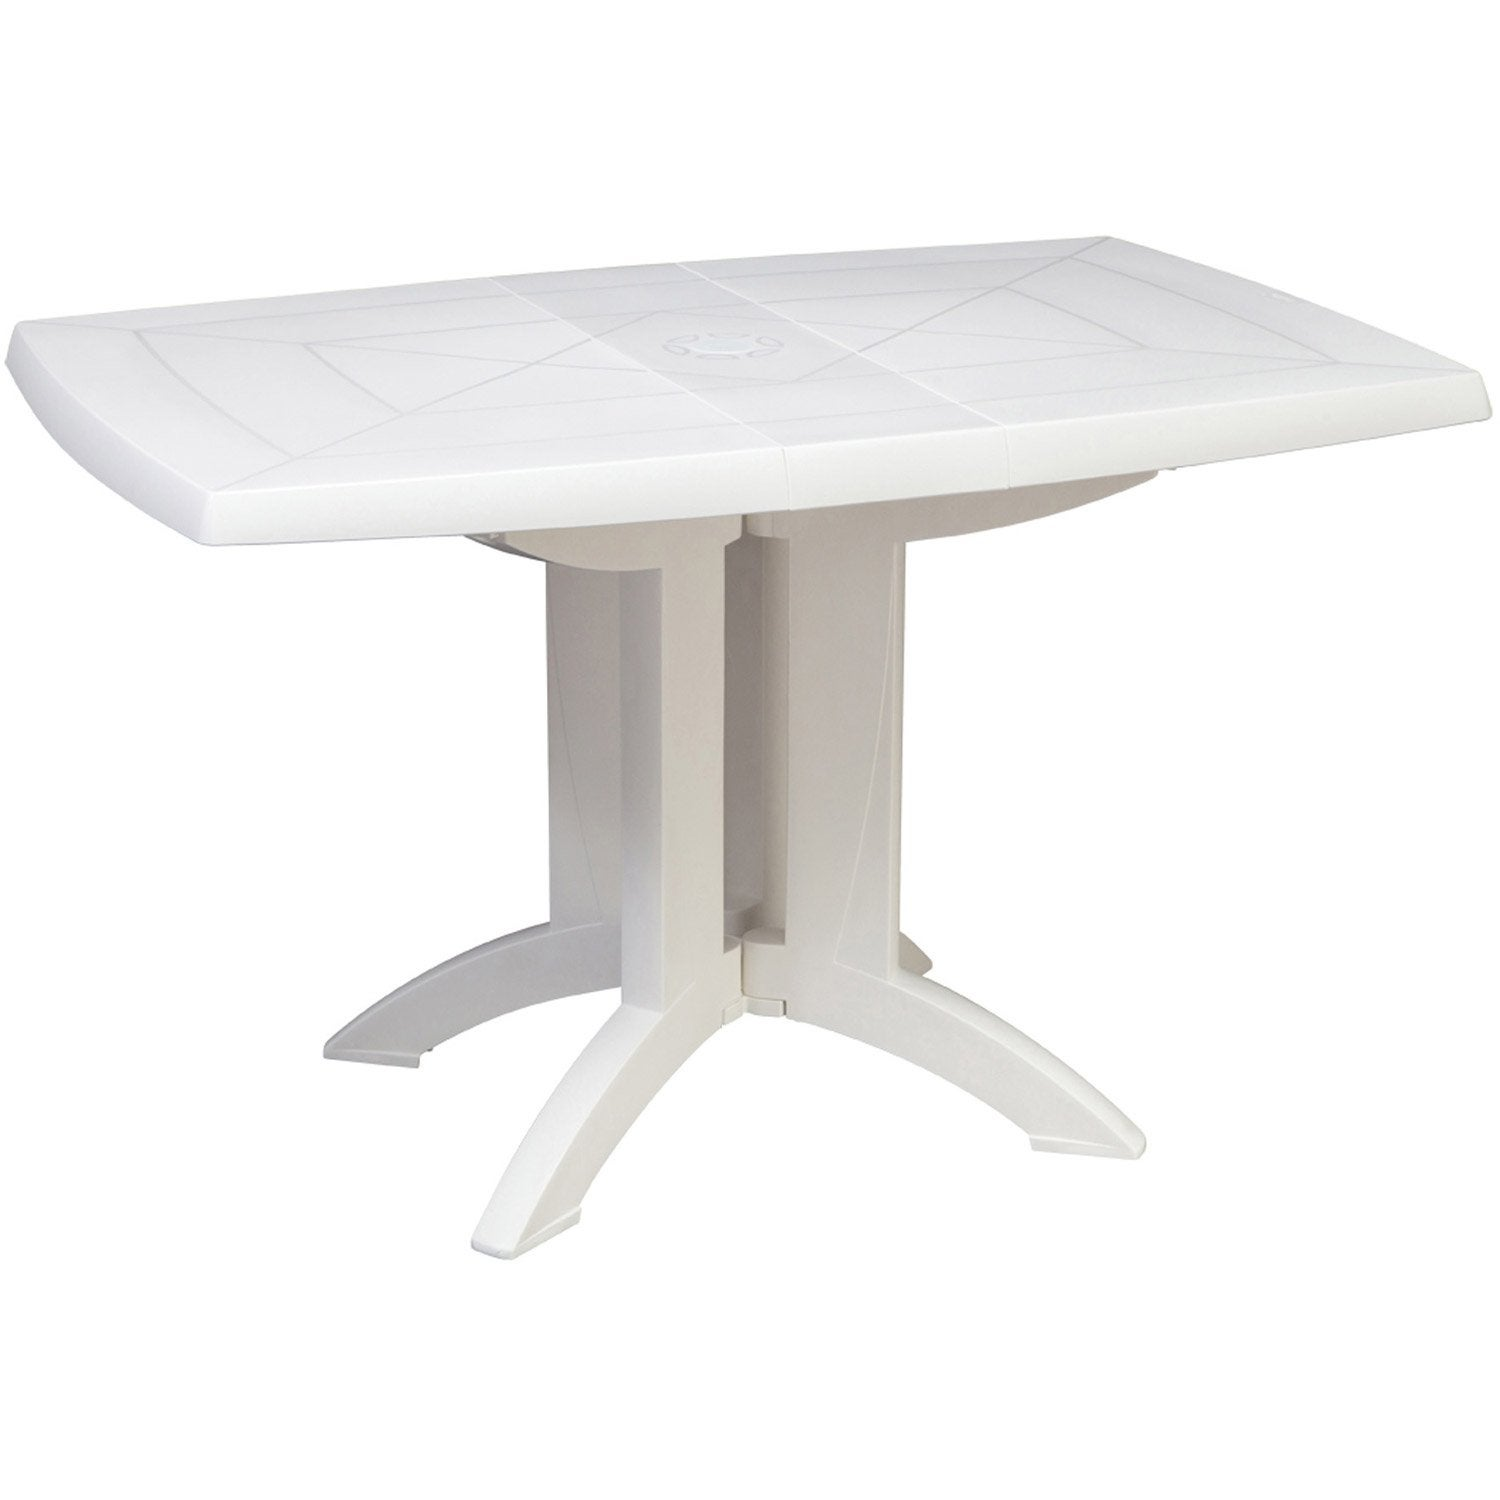 table de jardin grosfillex v ga rectangulaire blanc 4. Black Bedroom Furniture Sets. Home Design Ideas